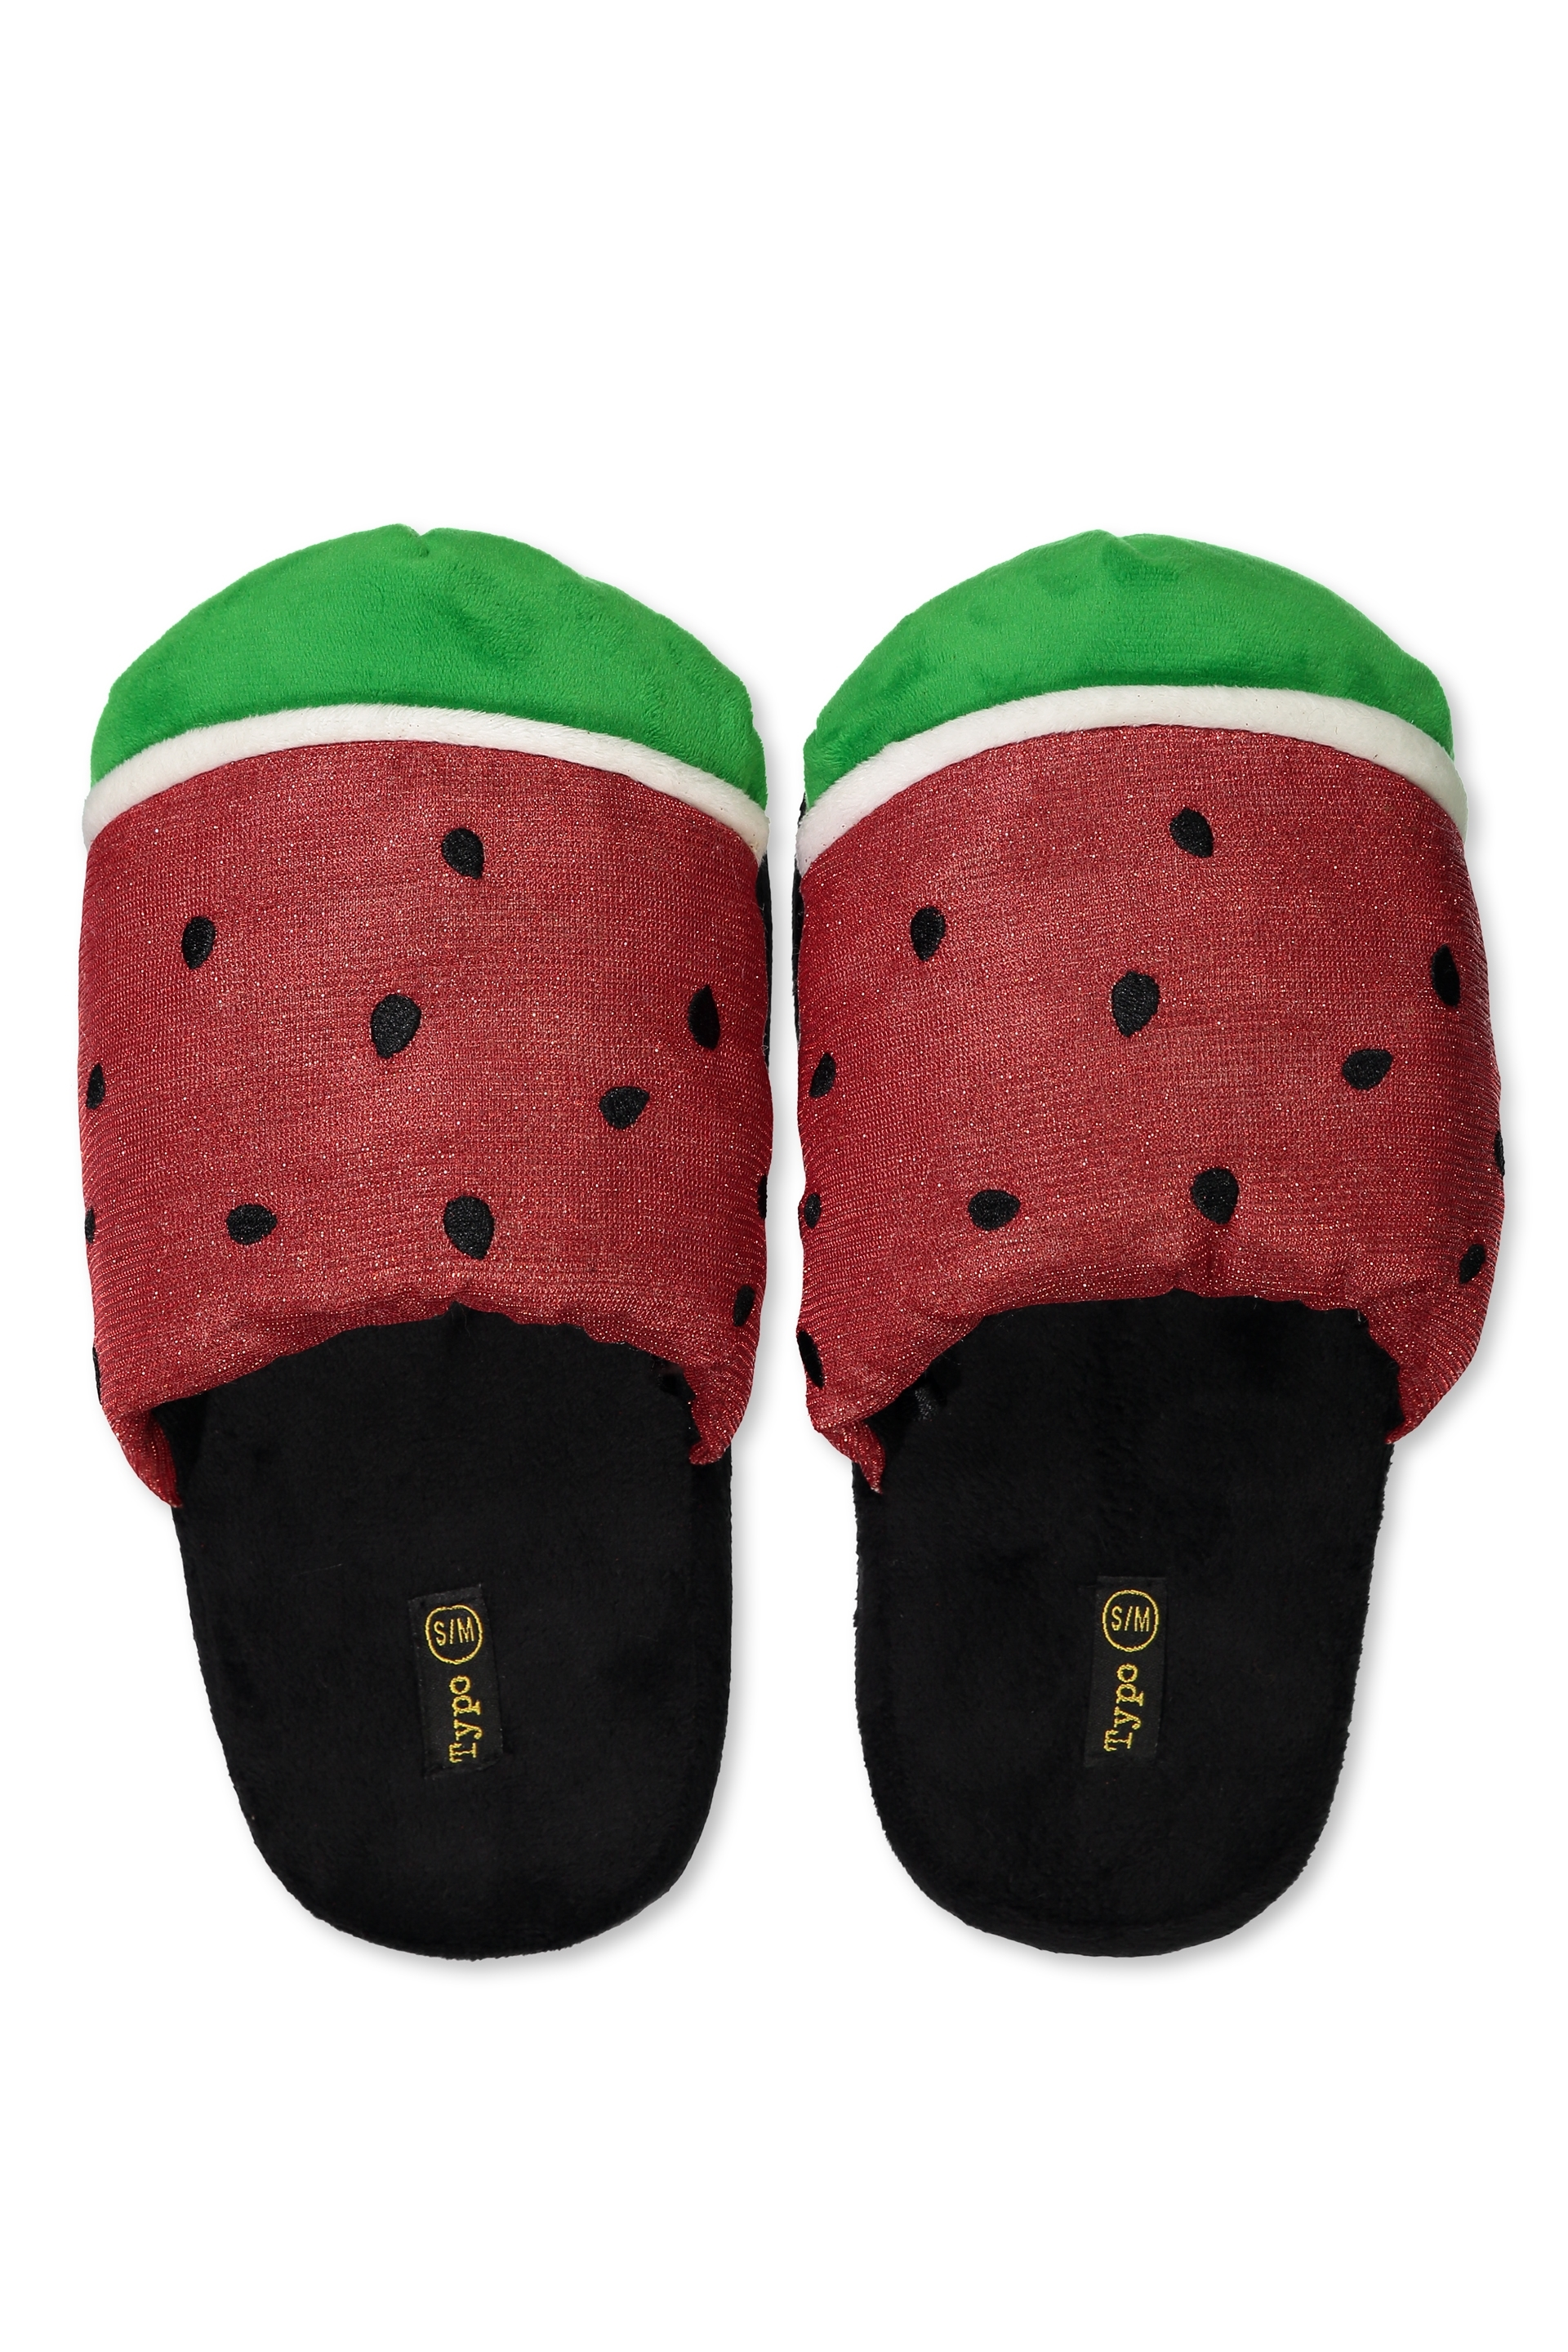 Typo - Slippers - Watermelon